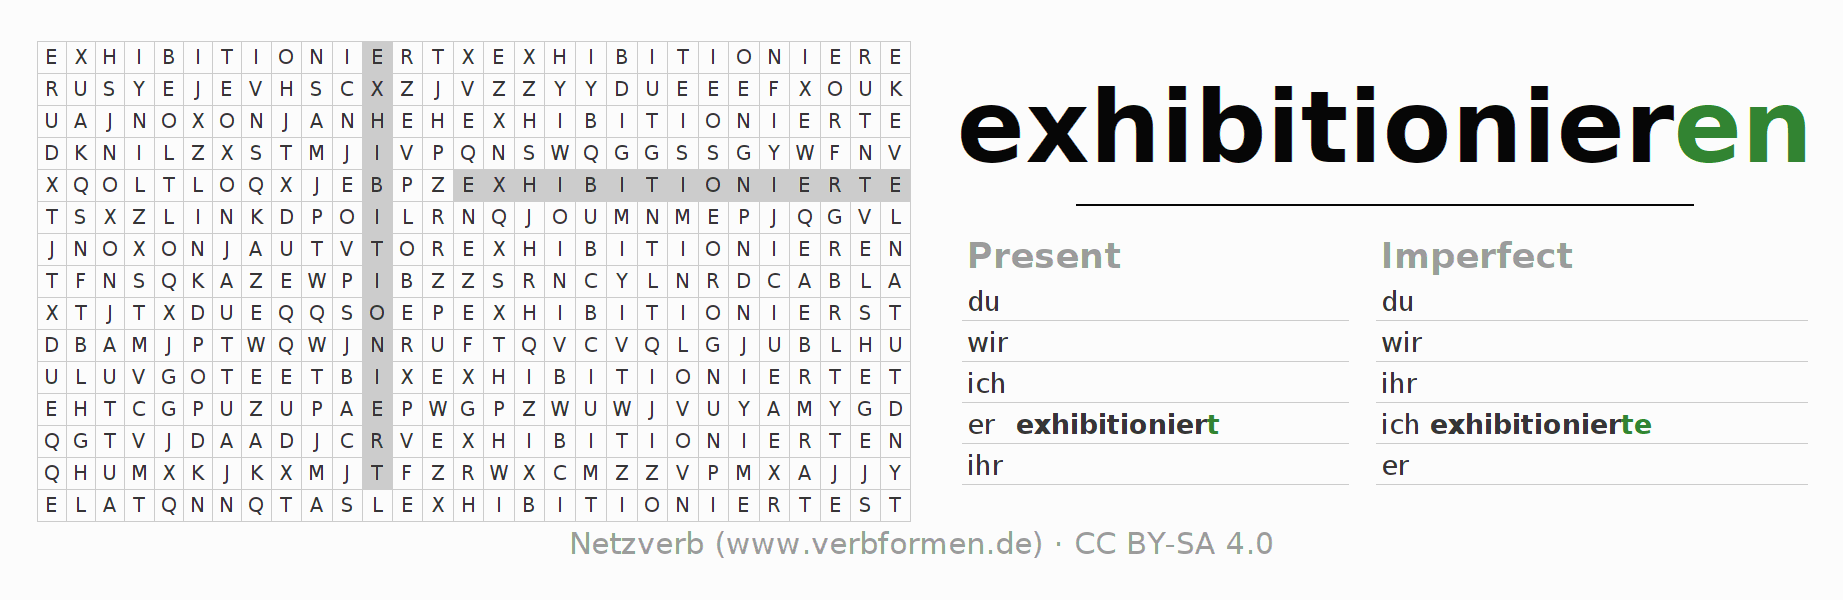 Word search puzzle for the conjugation of the verb exhibitionieren